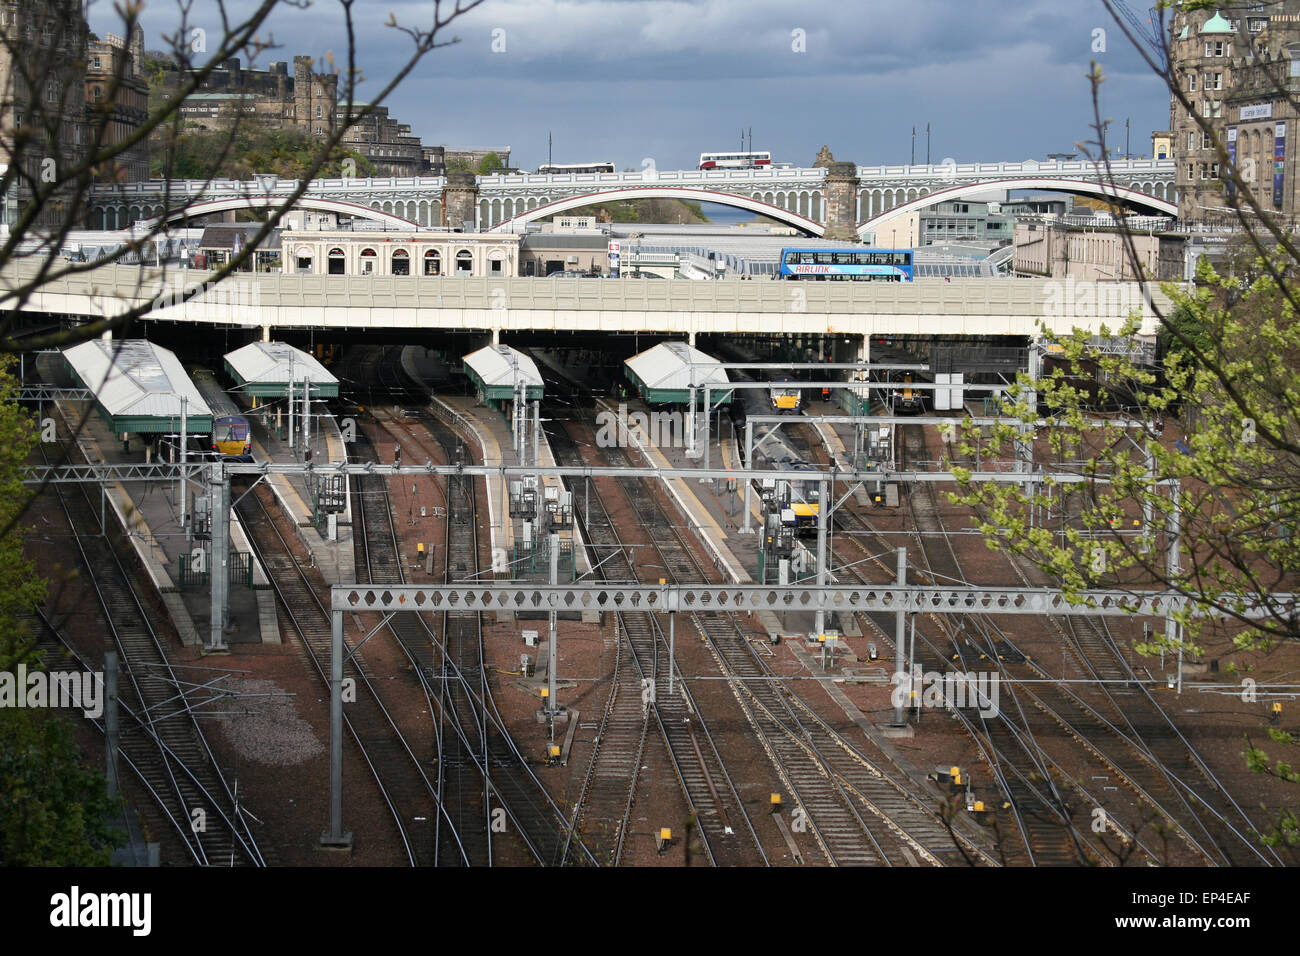 EDINGBURGH WAVERLEY STATION SCOTLAND SCOTRAIL - Stock Image